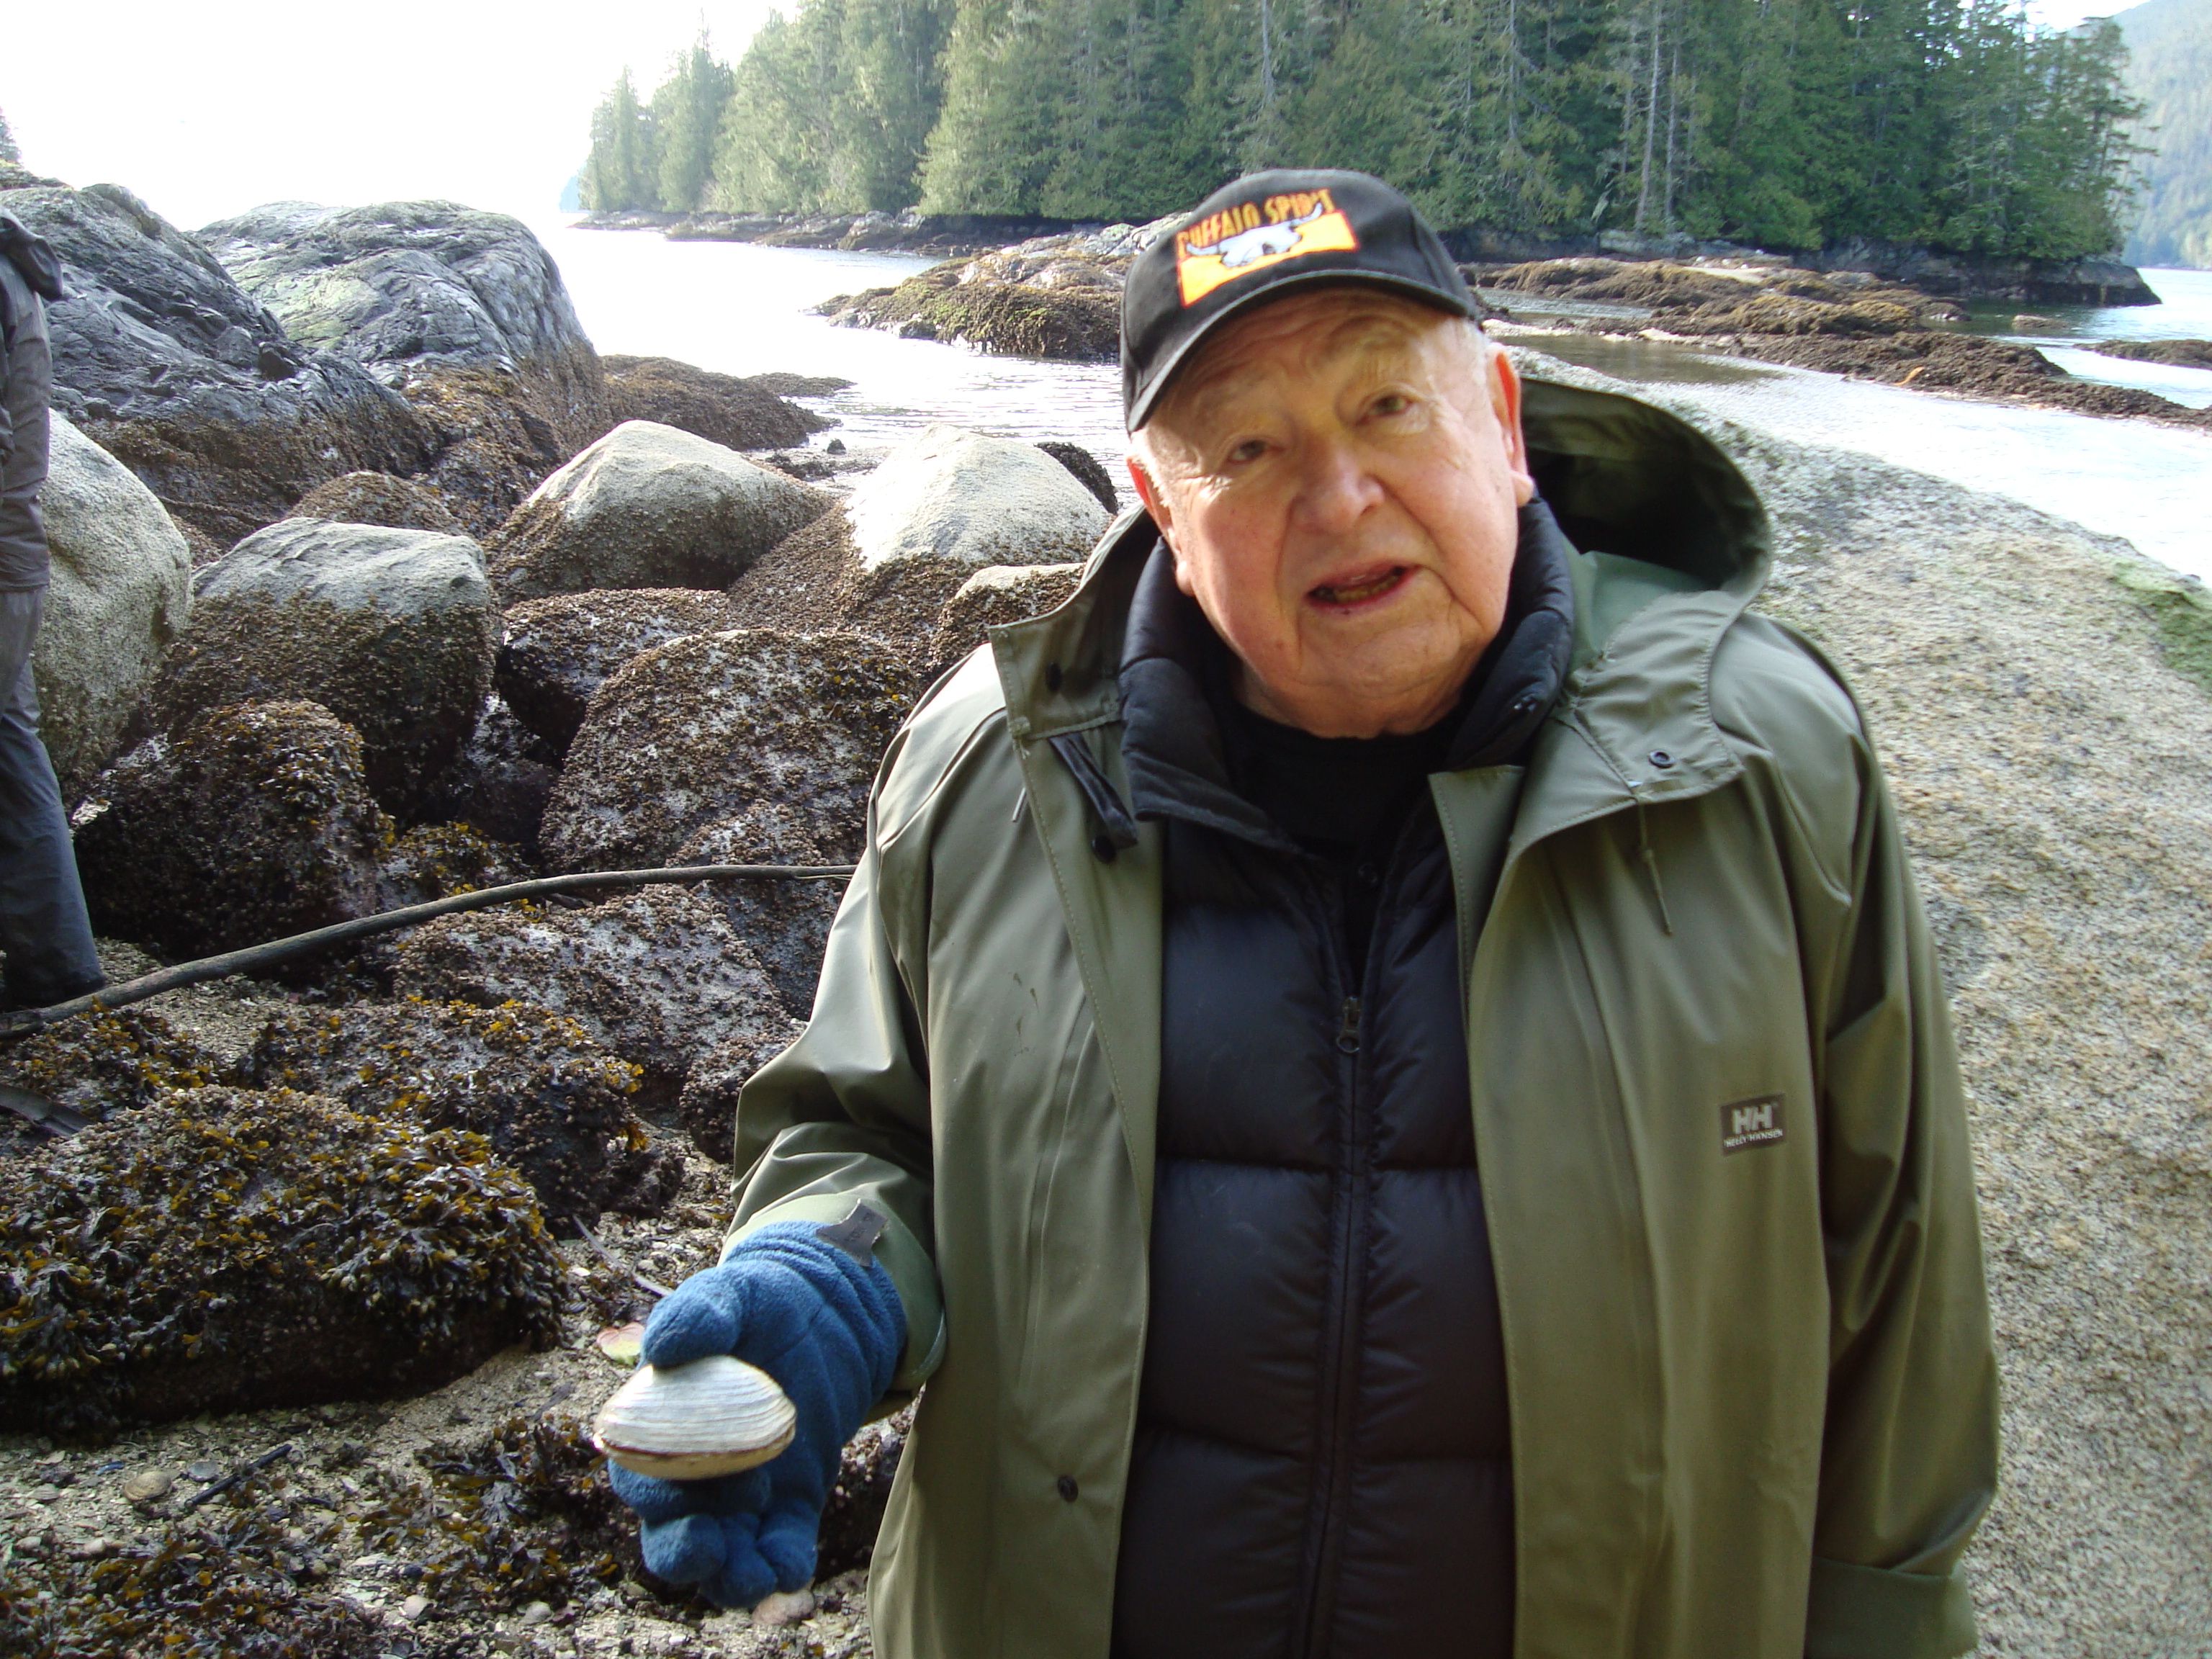 Kwaxsistalla in the clam gardens. Photo by Nancy Turner.